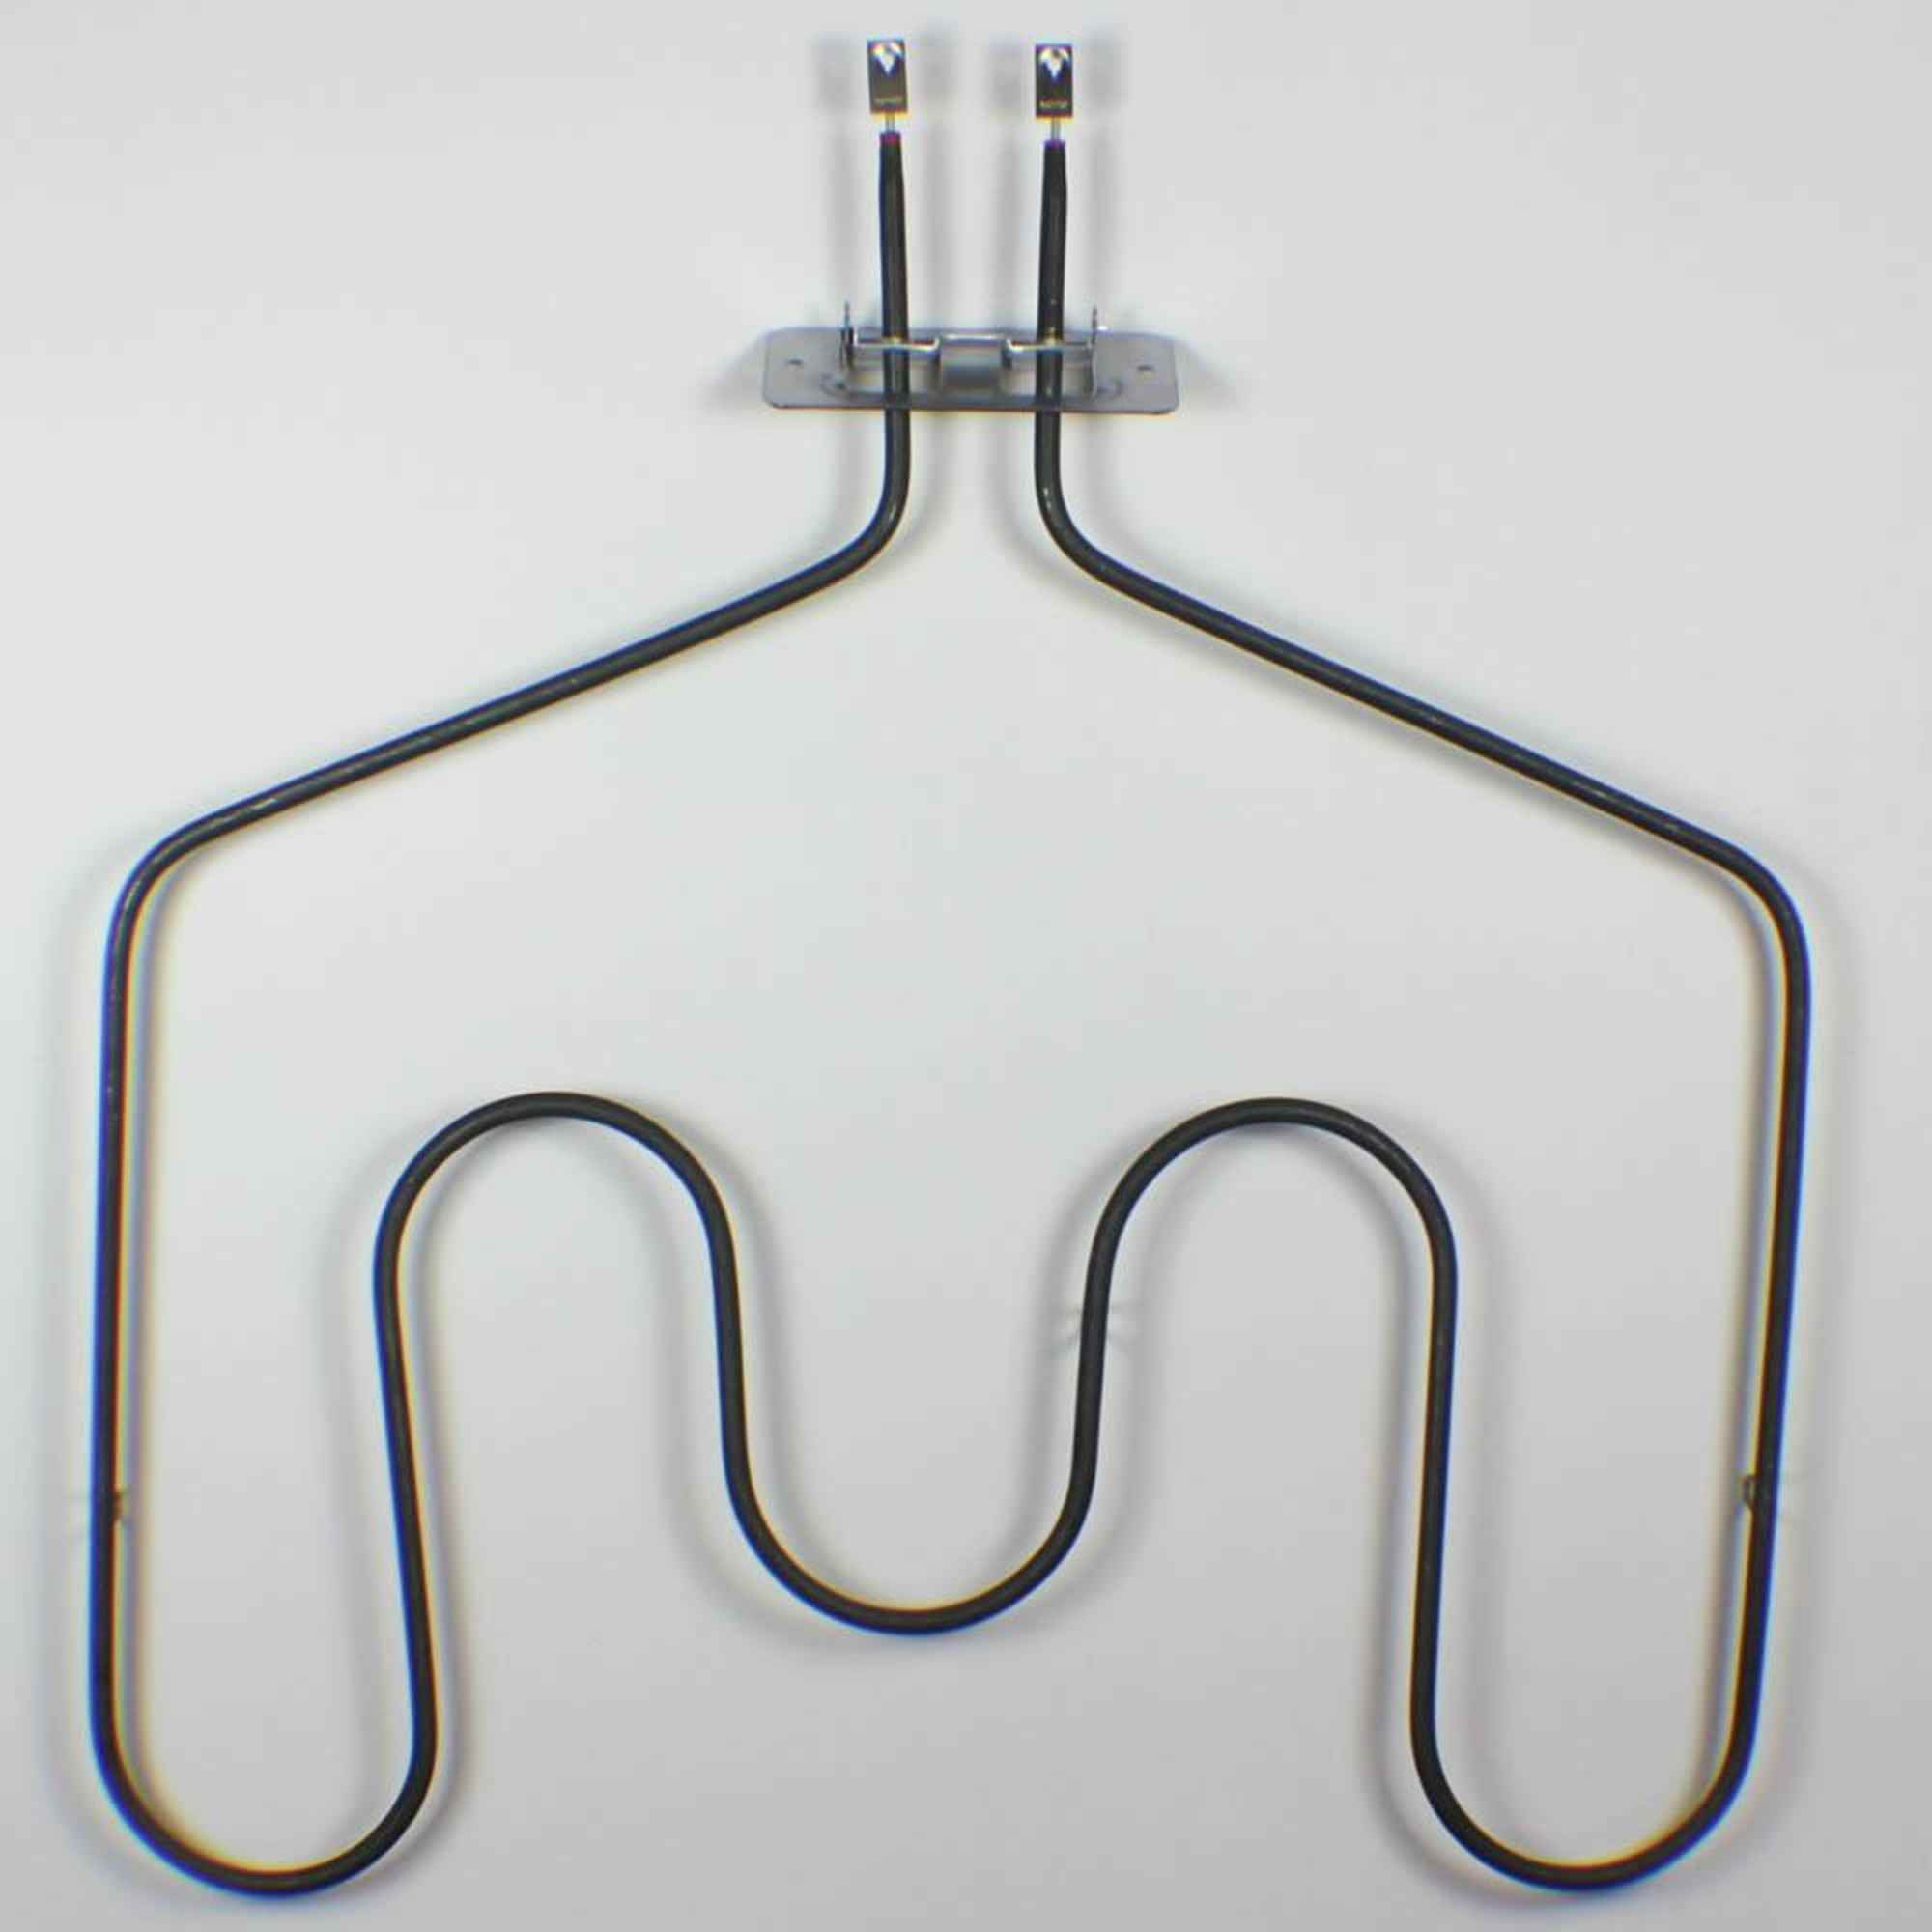 WB44X10013 For GE Oven Bake Element